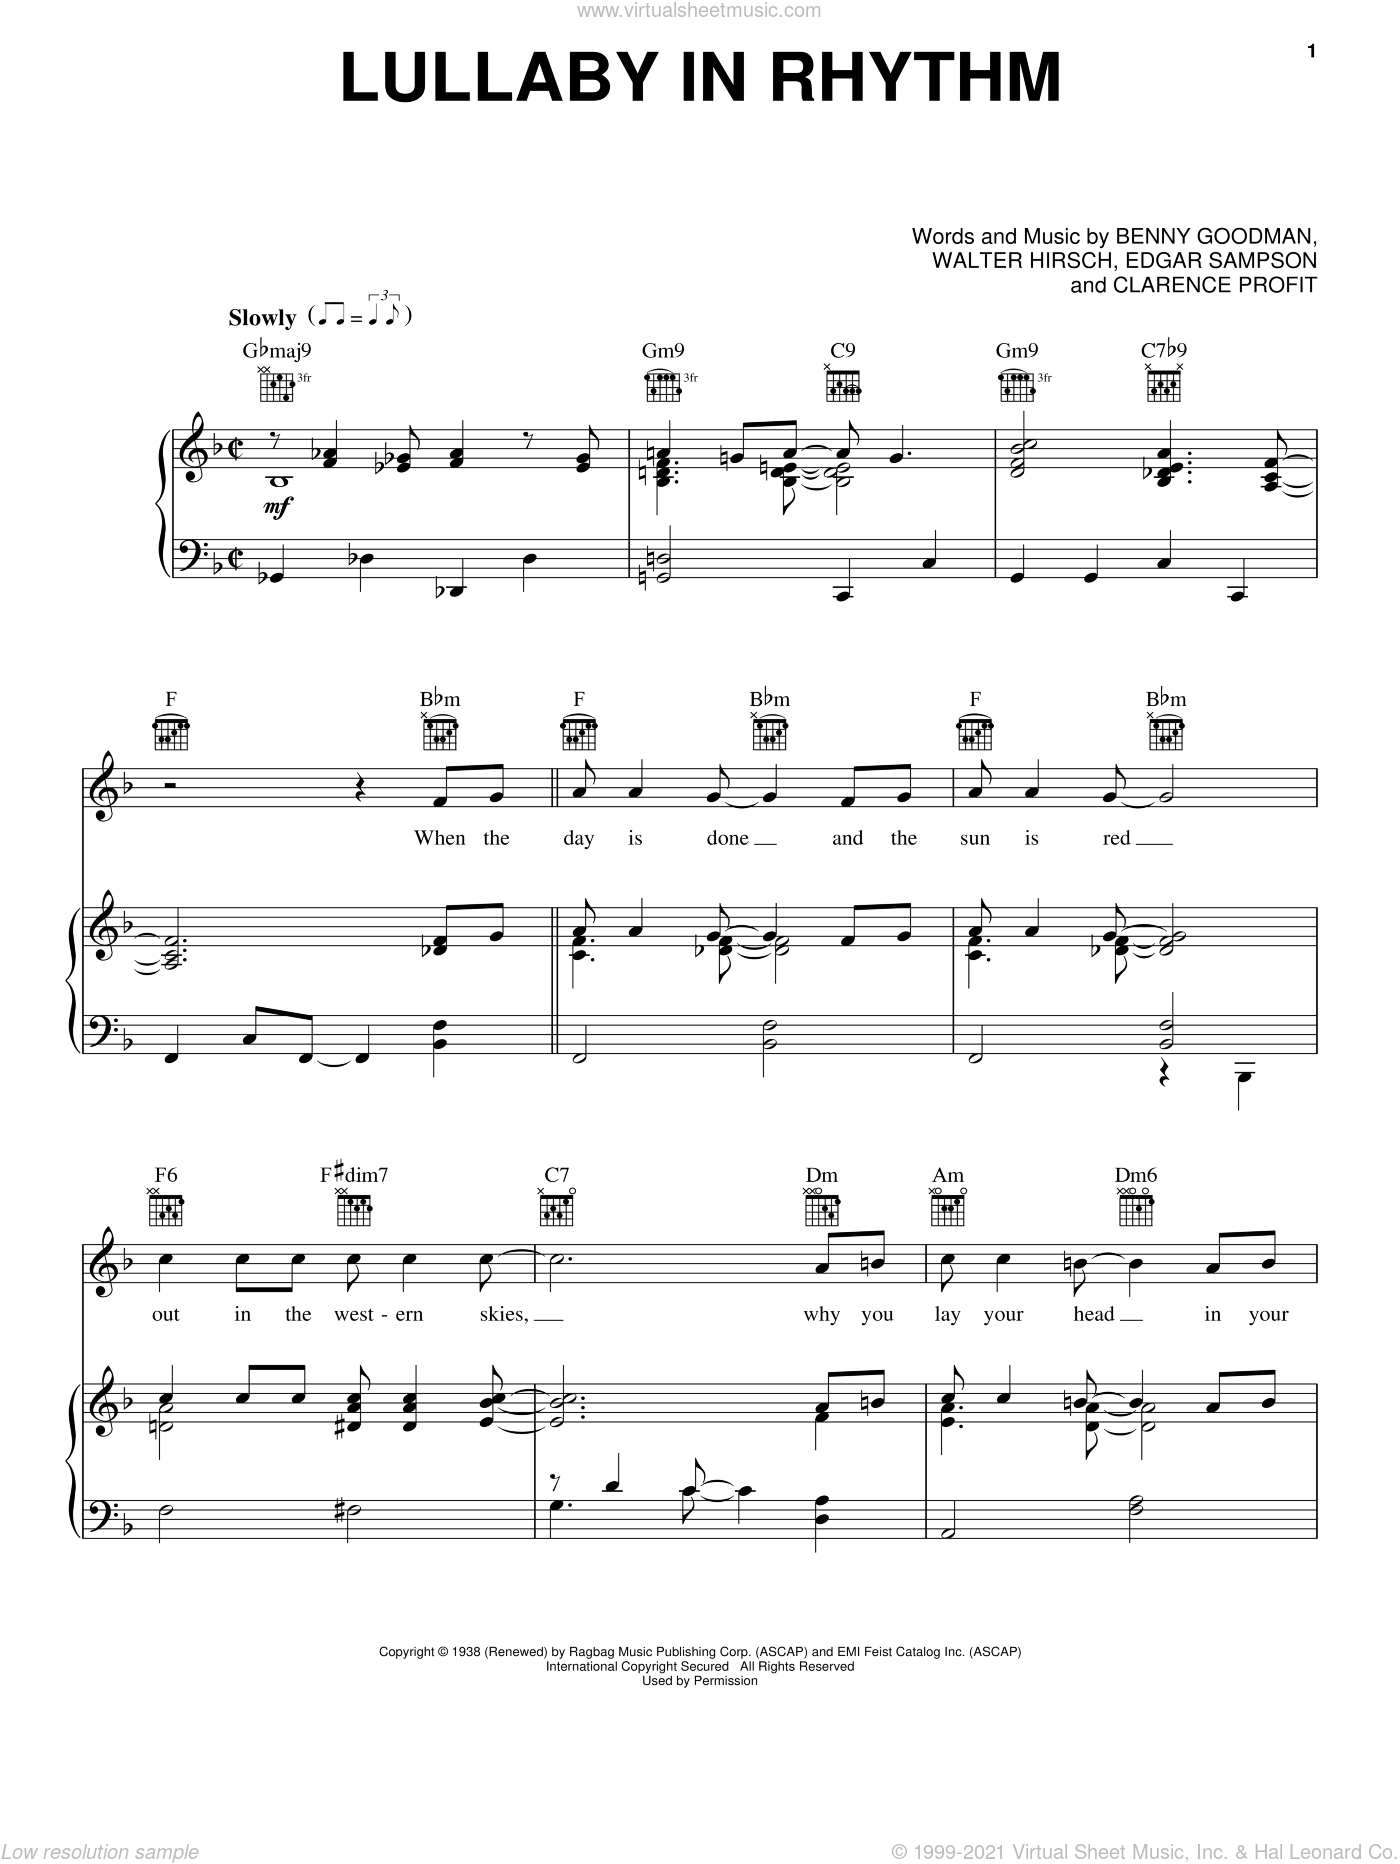 Lullaby In Rhythm sheet music for voice, piano or guitar by Clarence Profit